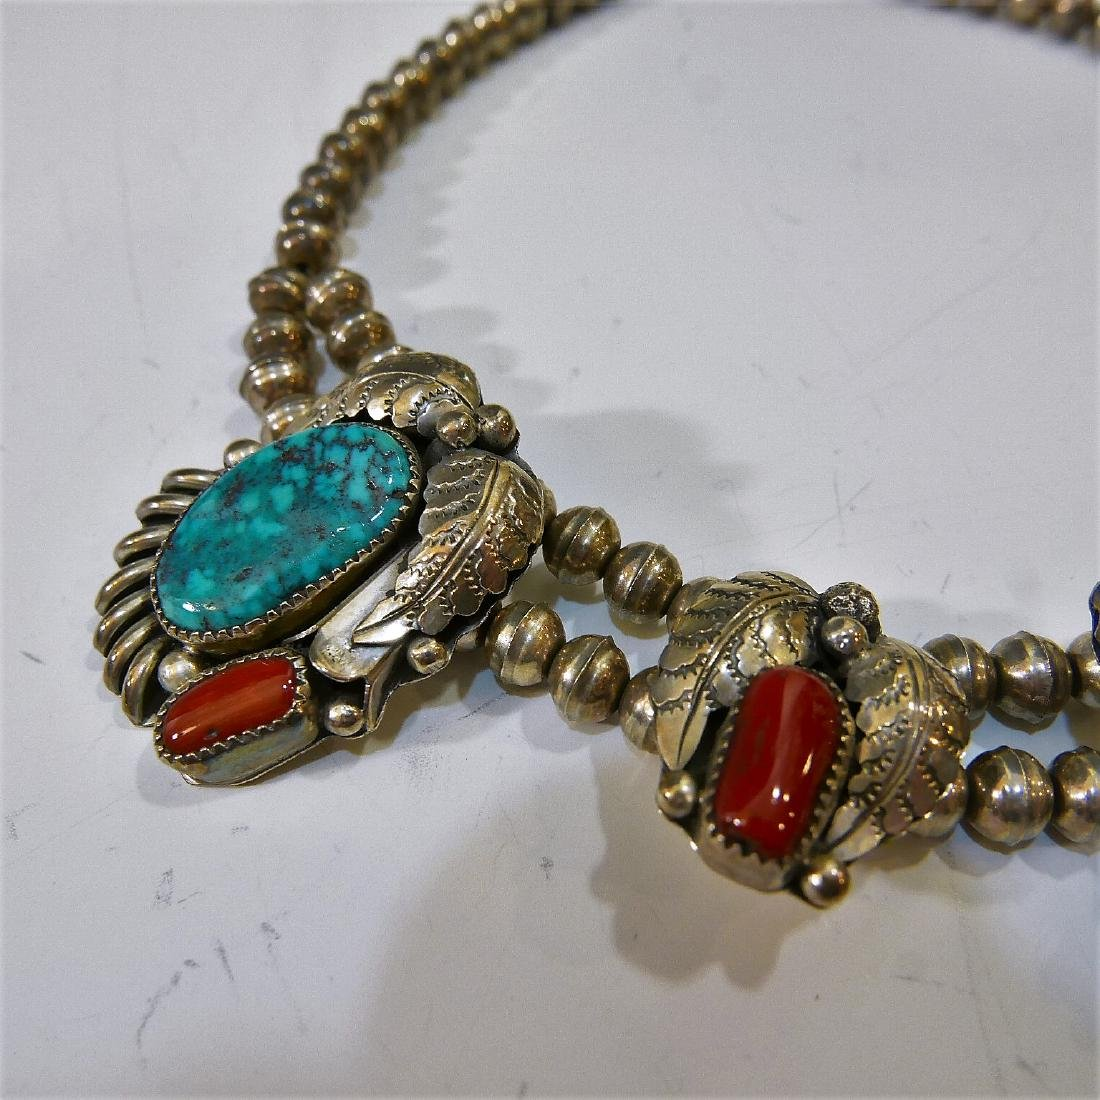 NAVAJO STERLING SILVER CORAL TURQUOISE NECKLACE - 3